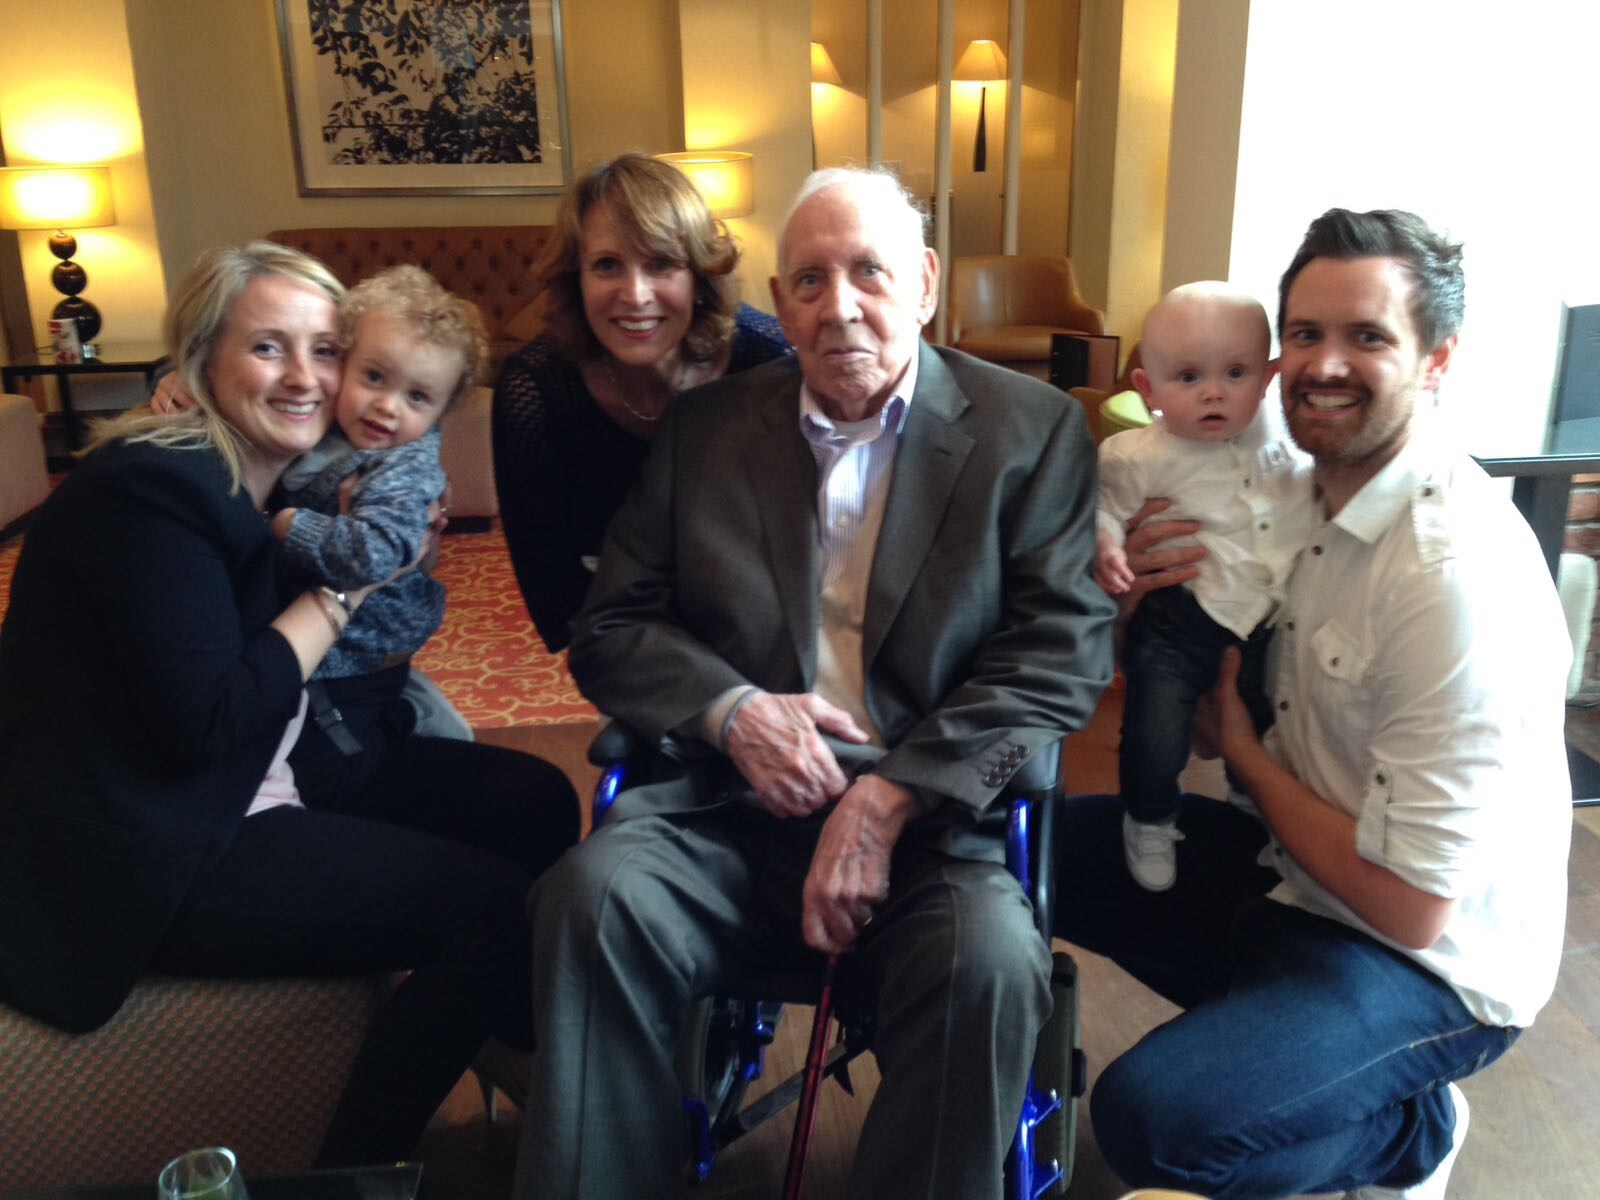 Grandad on his 91st Birthday at the Marriot for Sunday Lunch